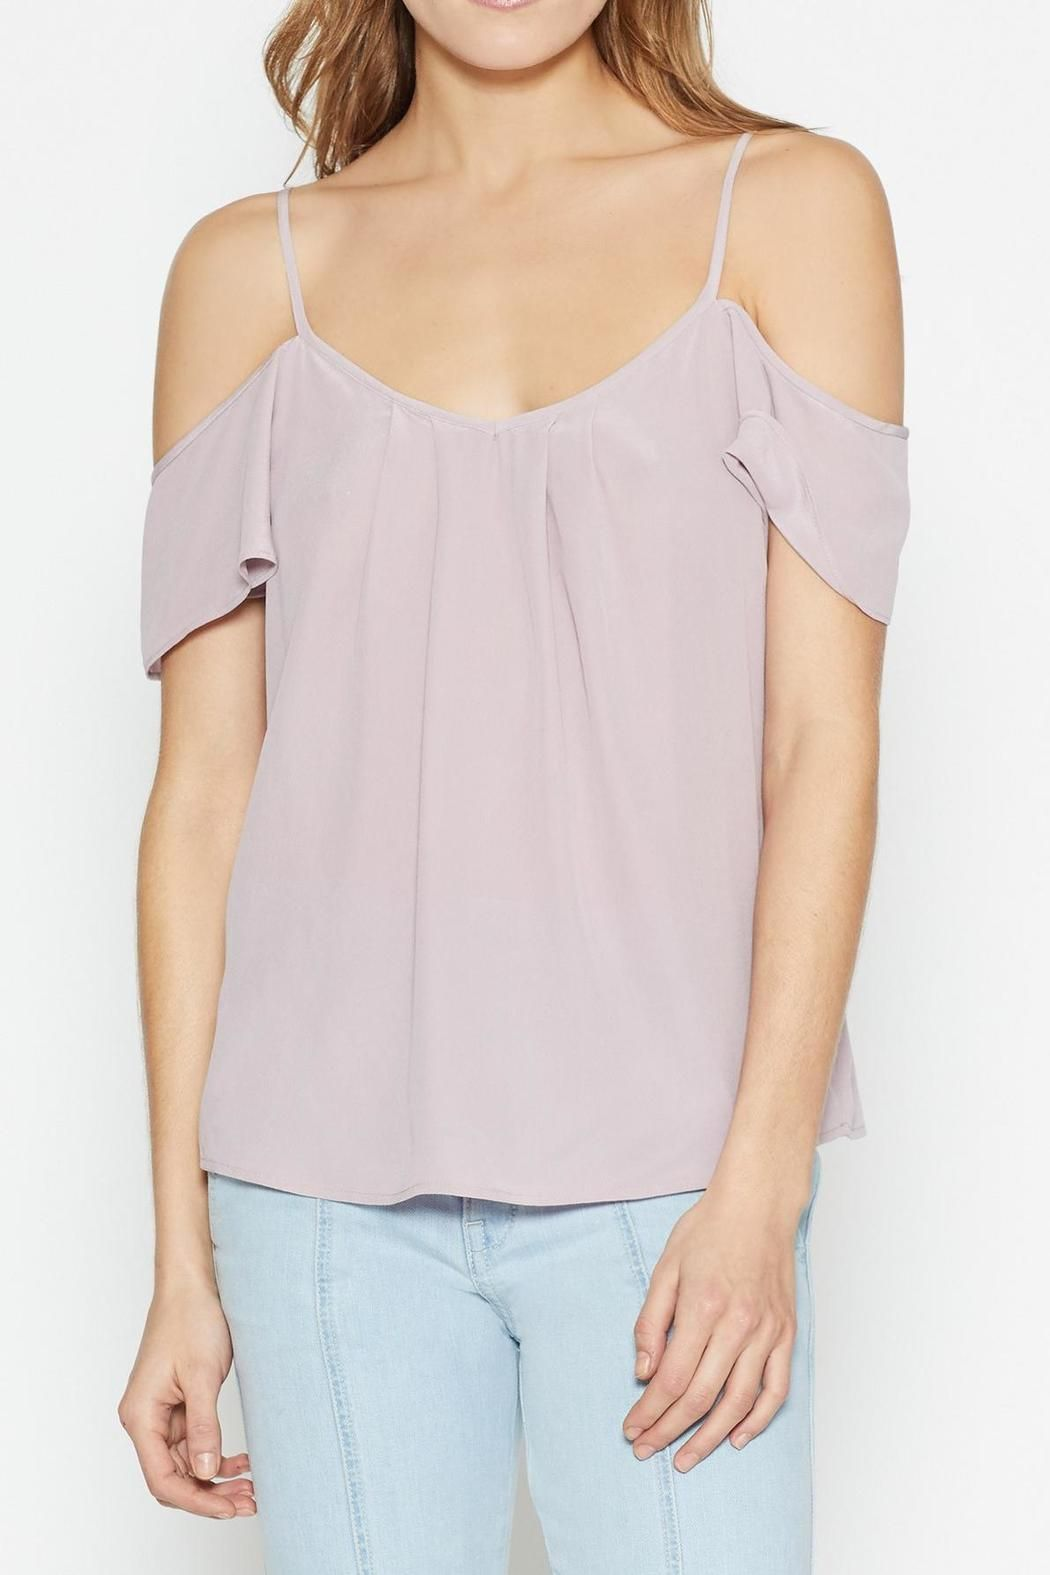 6cfabedab4592 The Adorlee Top by Joie features a scoop neckline